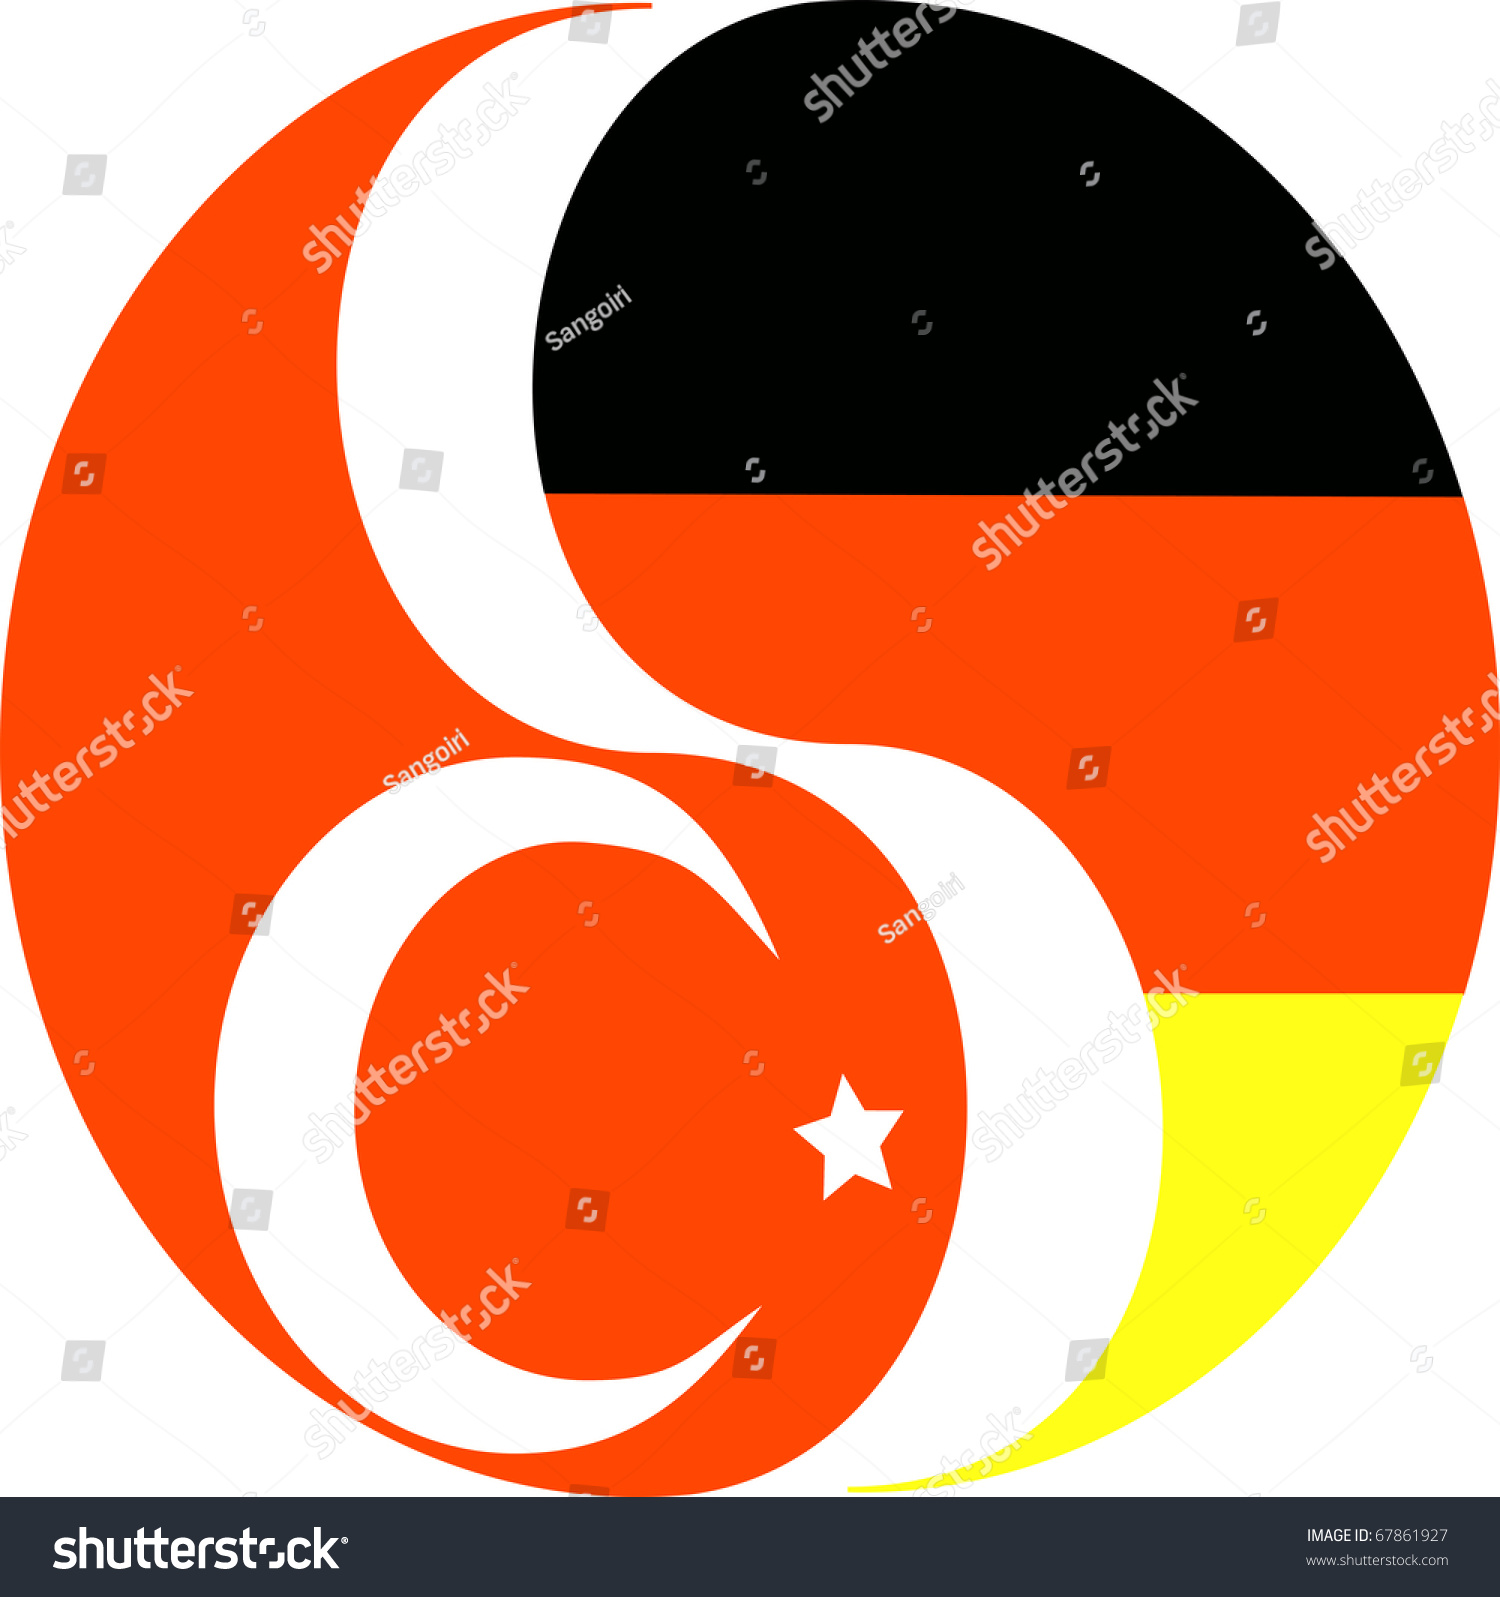 the relationship between germany and the Italians hate germany with a passion, especially in the middle of the eurozone crisis but for centuries, our cultures have been deeply interwined the italian-german relationship - the european.